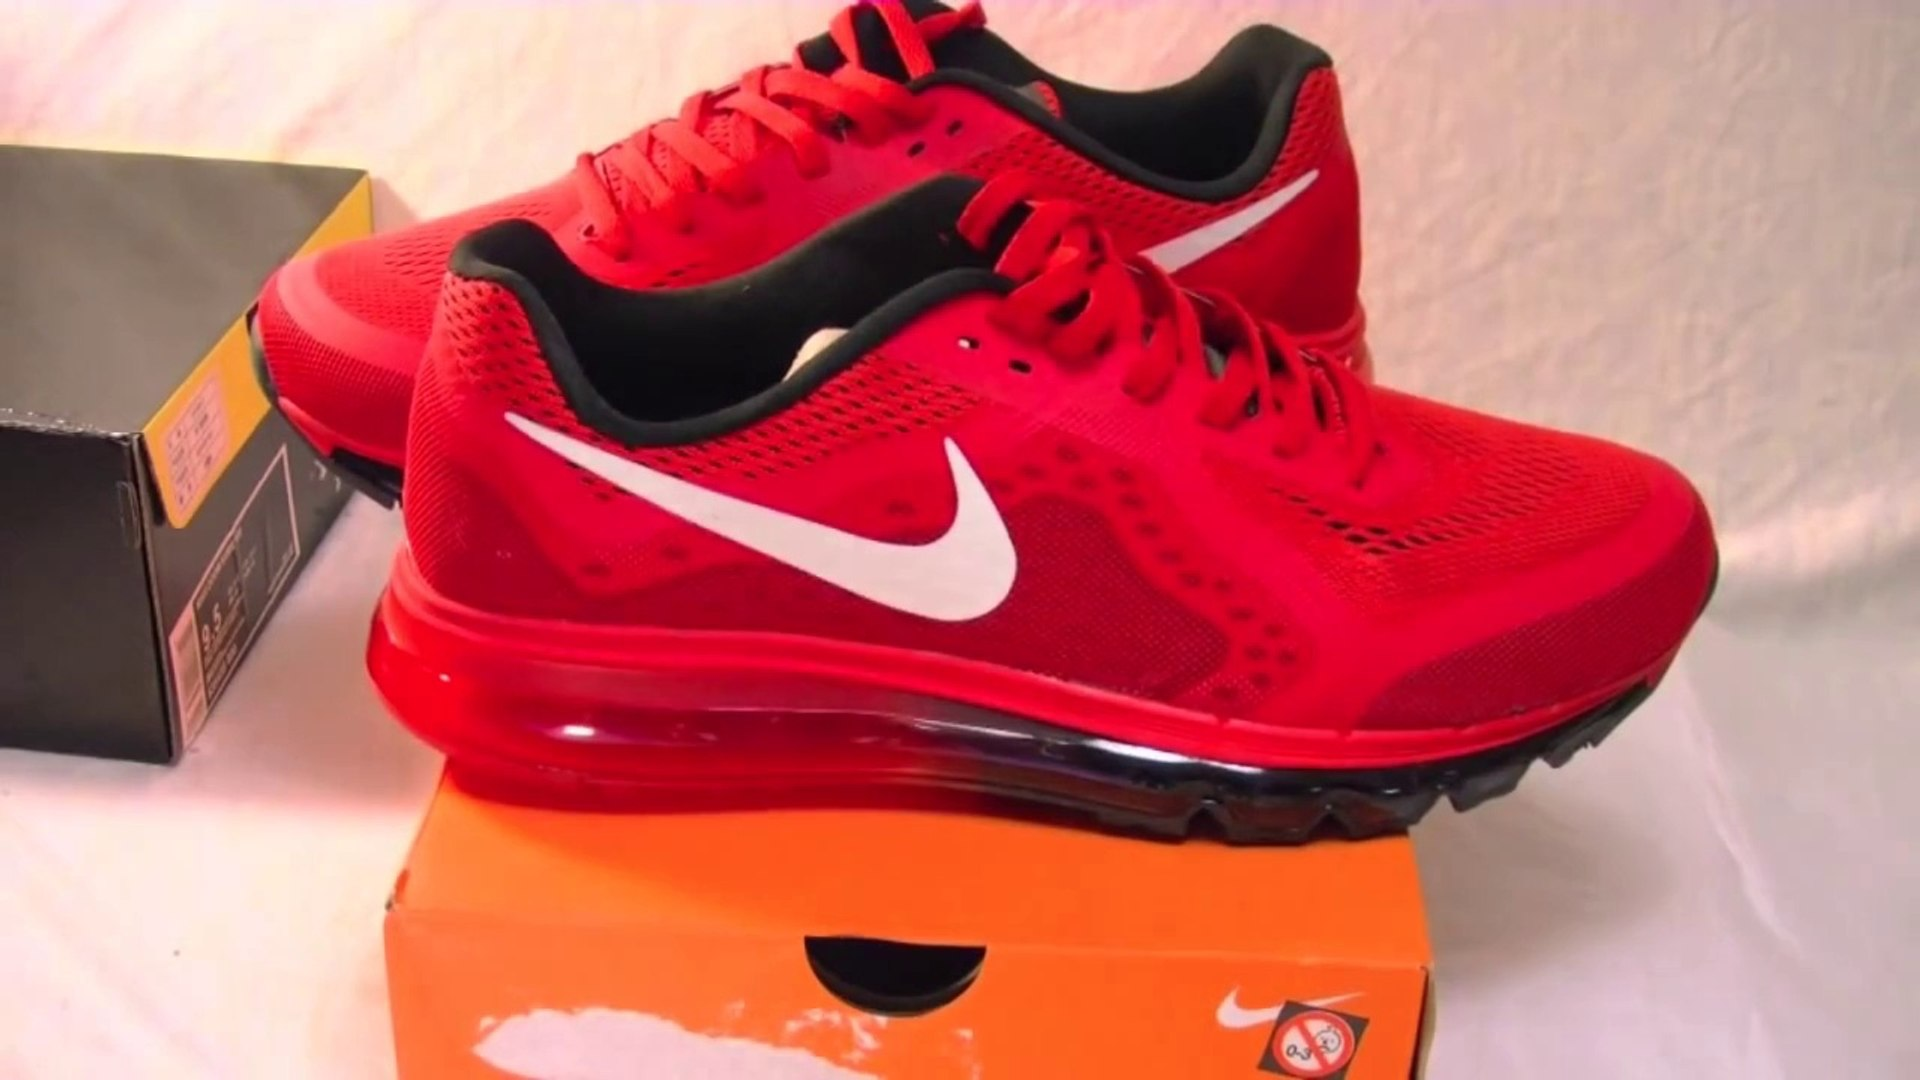 Cheap Nike Air Max Shoes free shipping,Red Air Max 2014 Replica Review